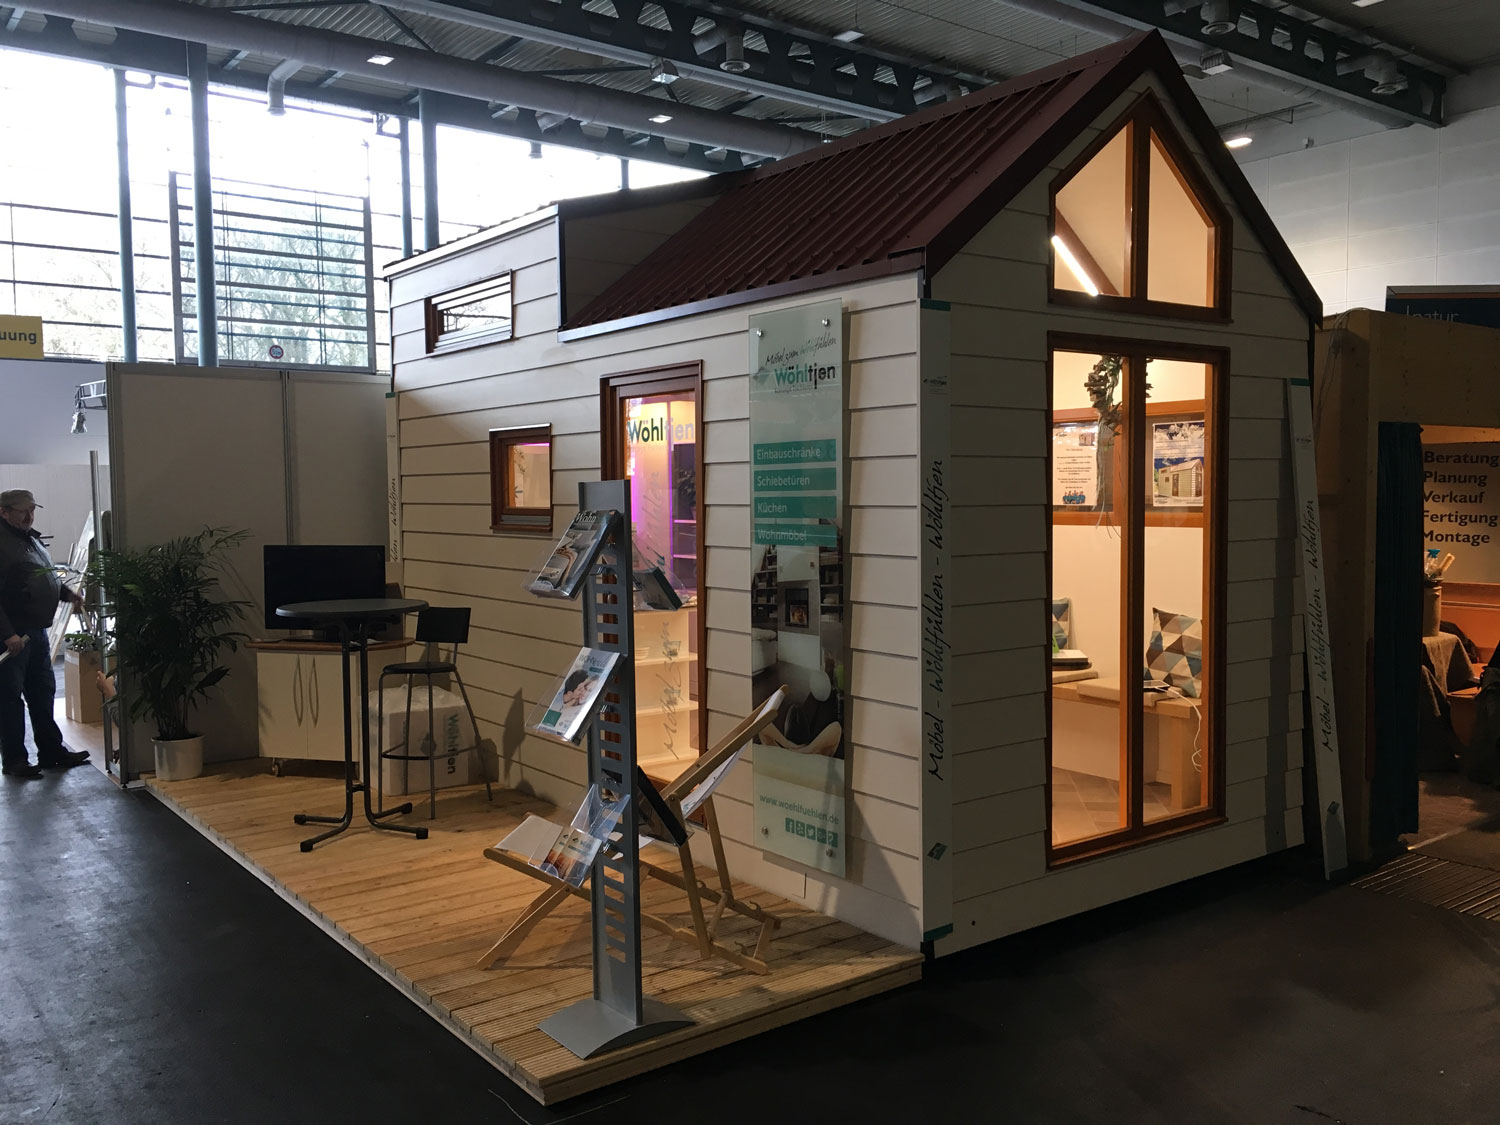 Tiny-House by Woehltjen Messe